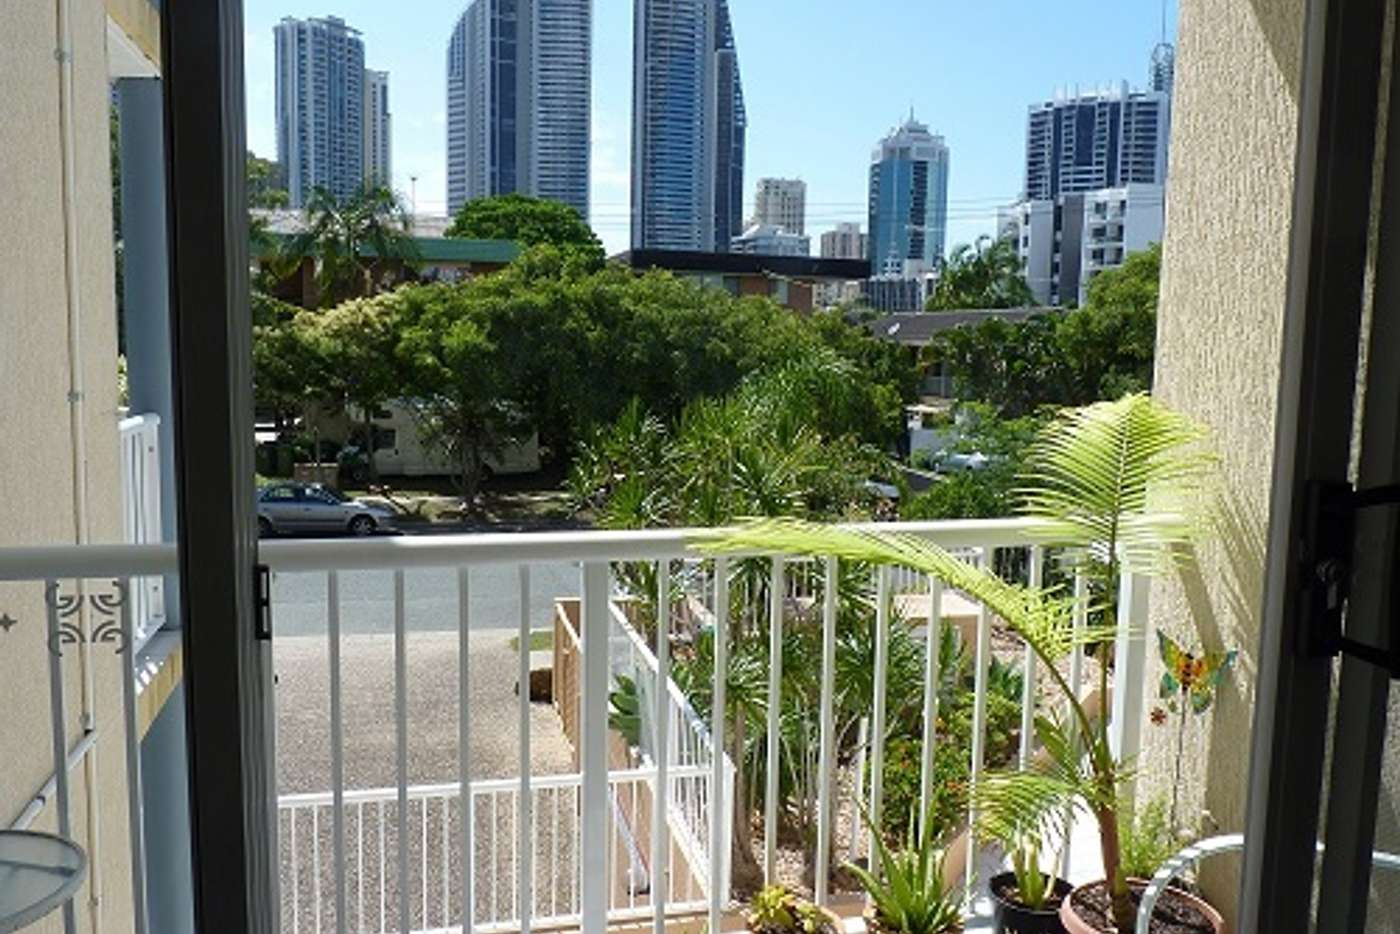 Main view of Homely apartment listing, 10/14-16 Darrambal Street, Chevron Island QLD 4217